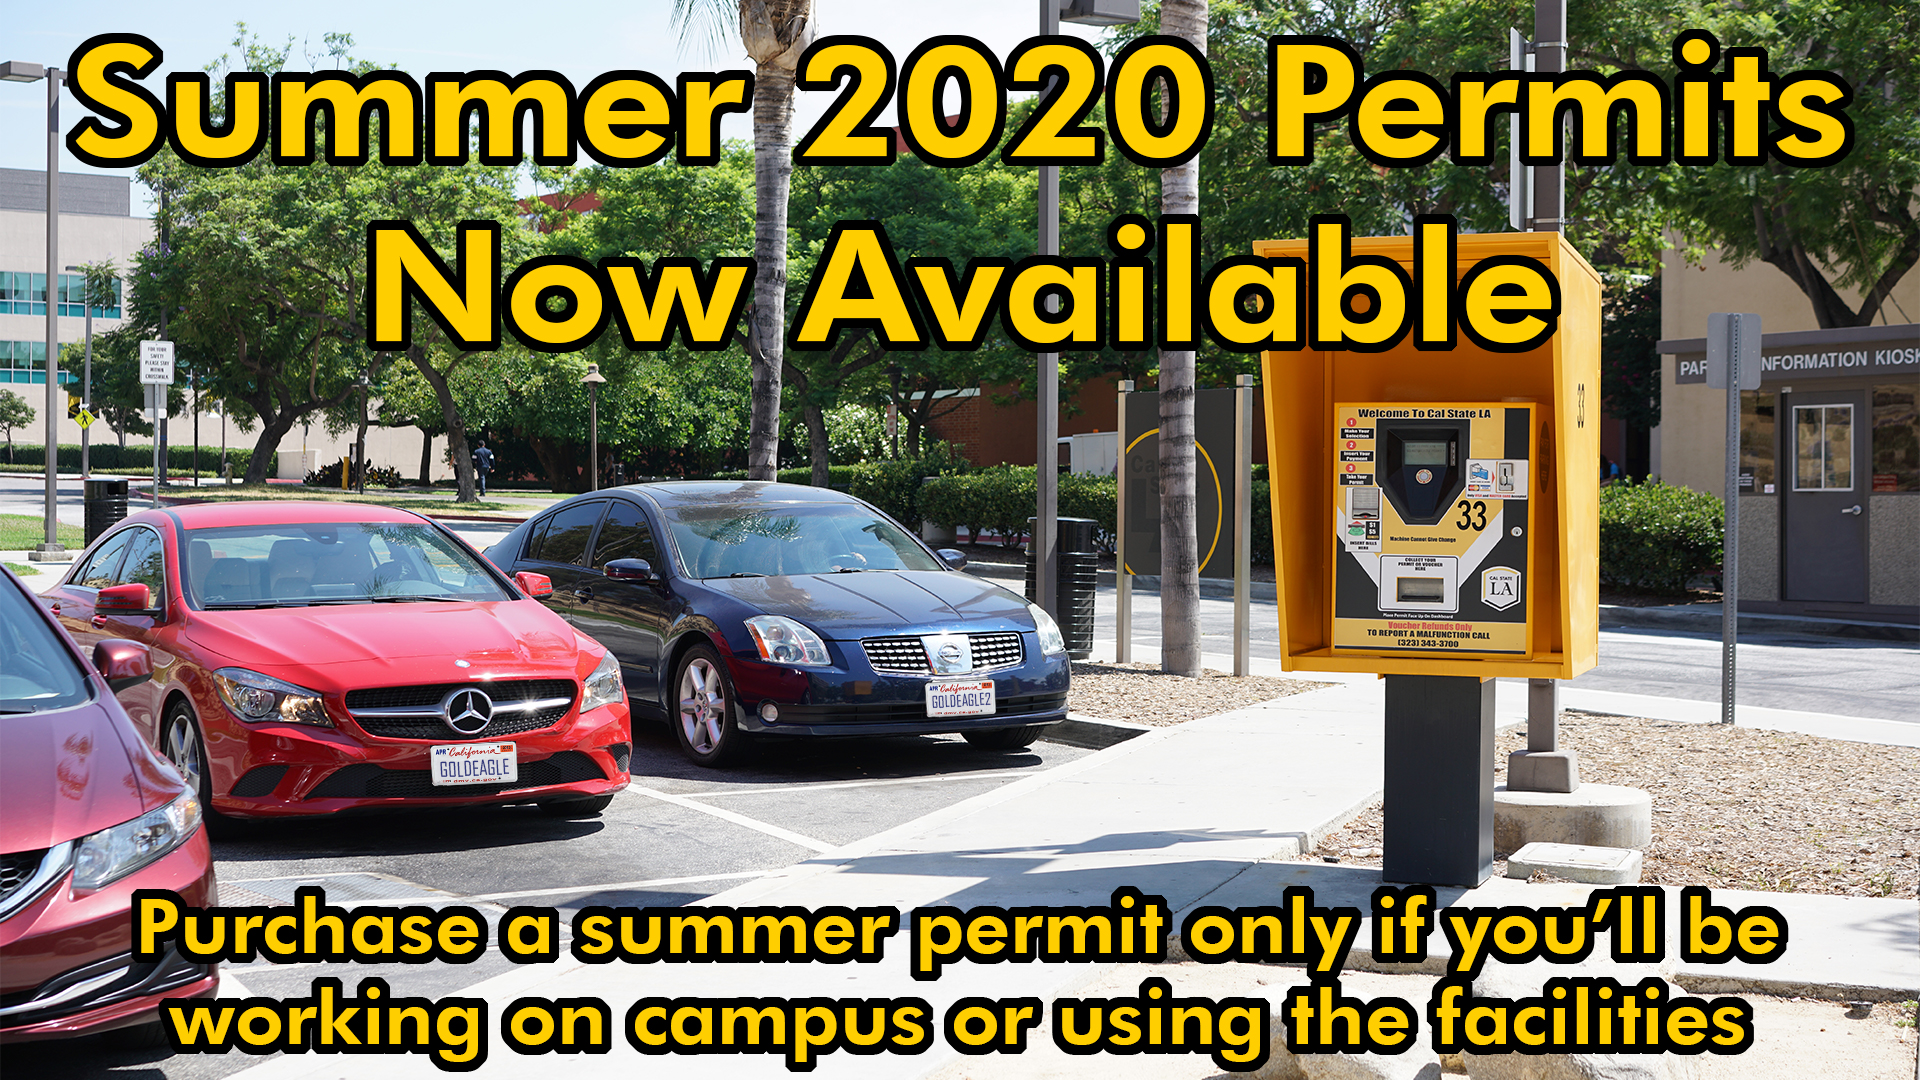 Purchase a Summer 2020 permit only if you'll be on campus or using the facilities